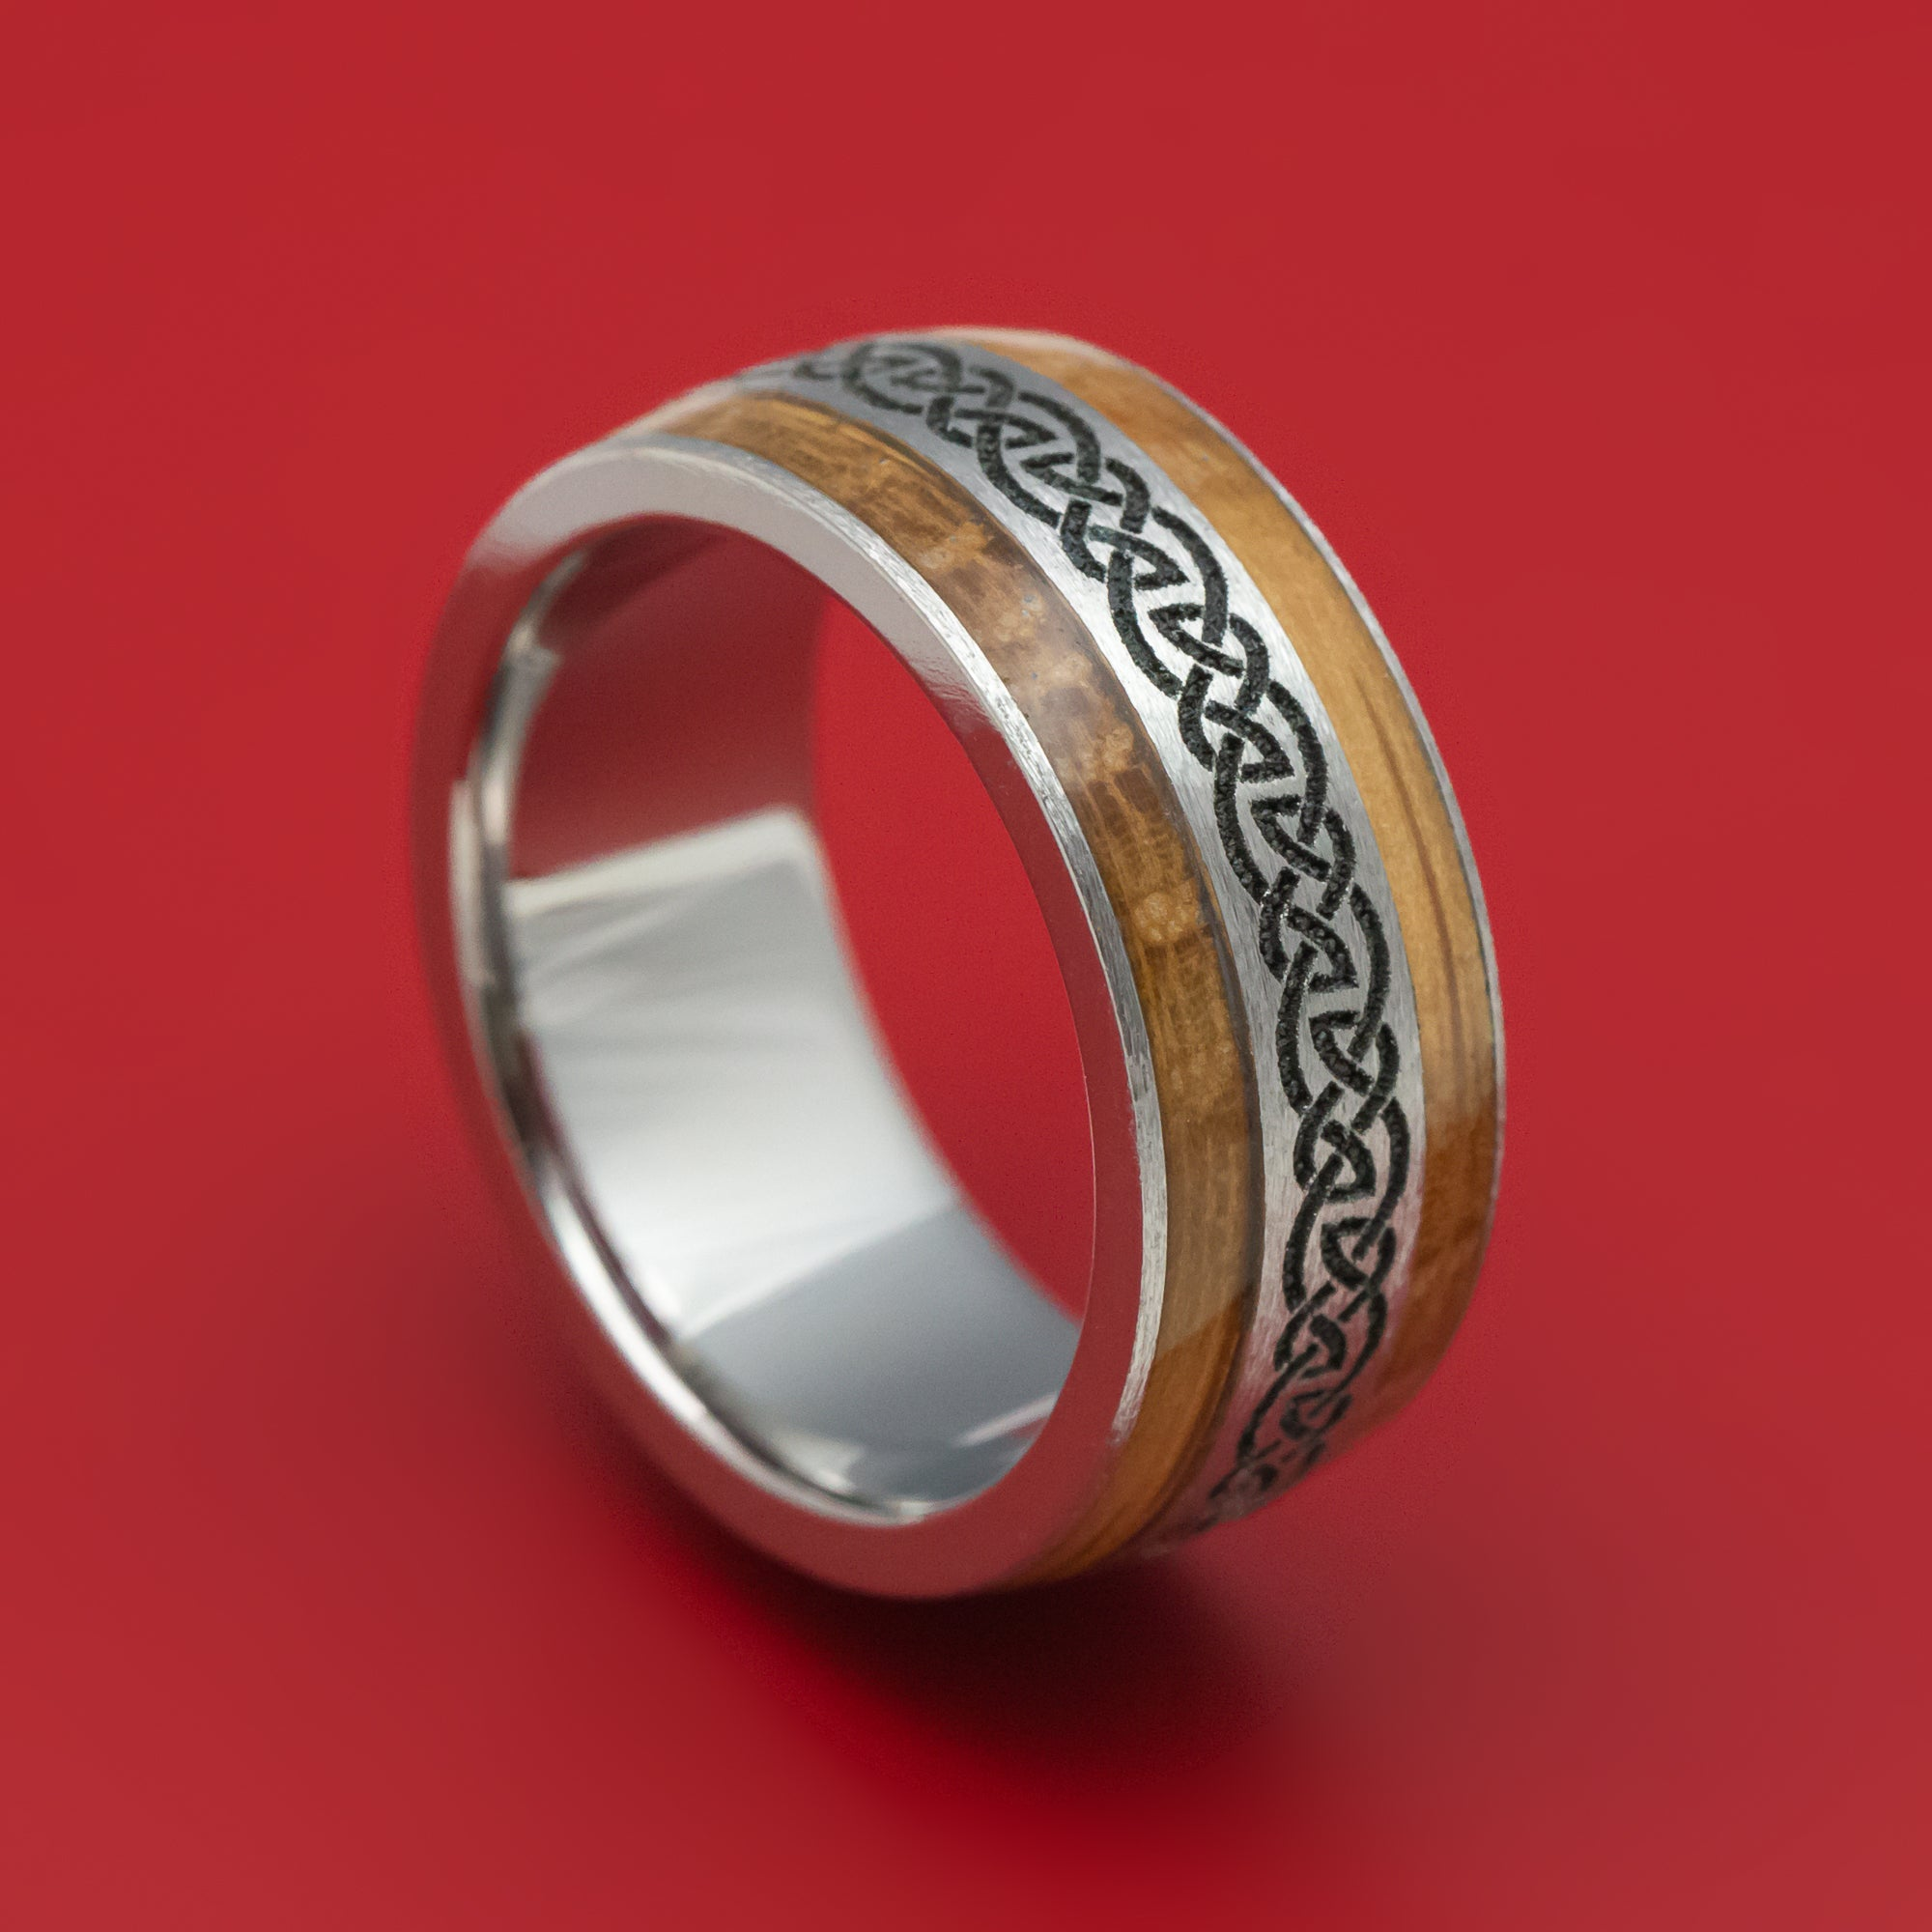 Whiskey Barrel wood and Copper Accents with Red GlowDino inlay Titanium core Custom Ring For Tess